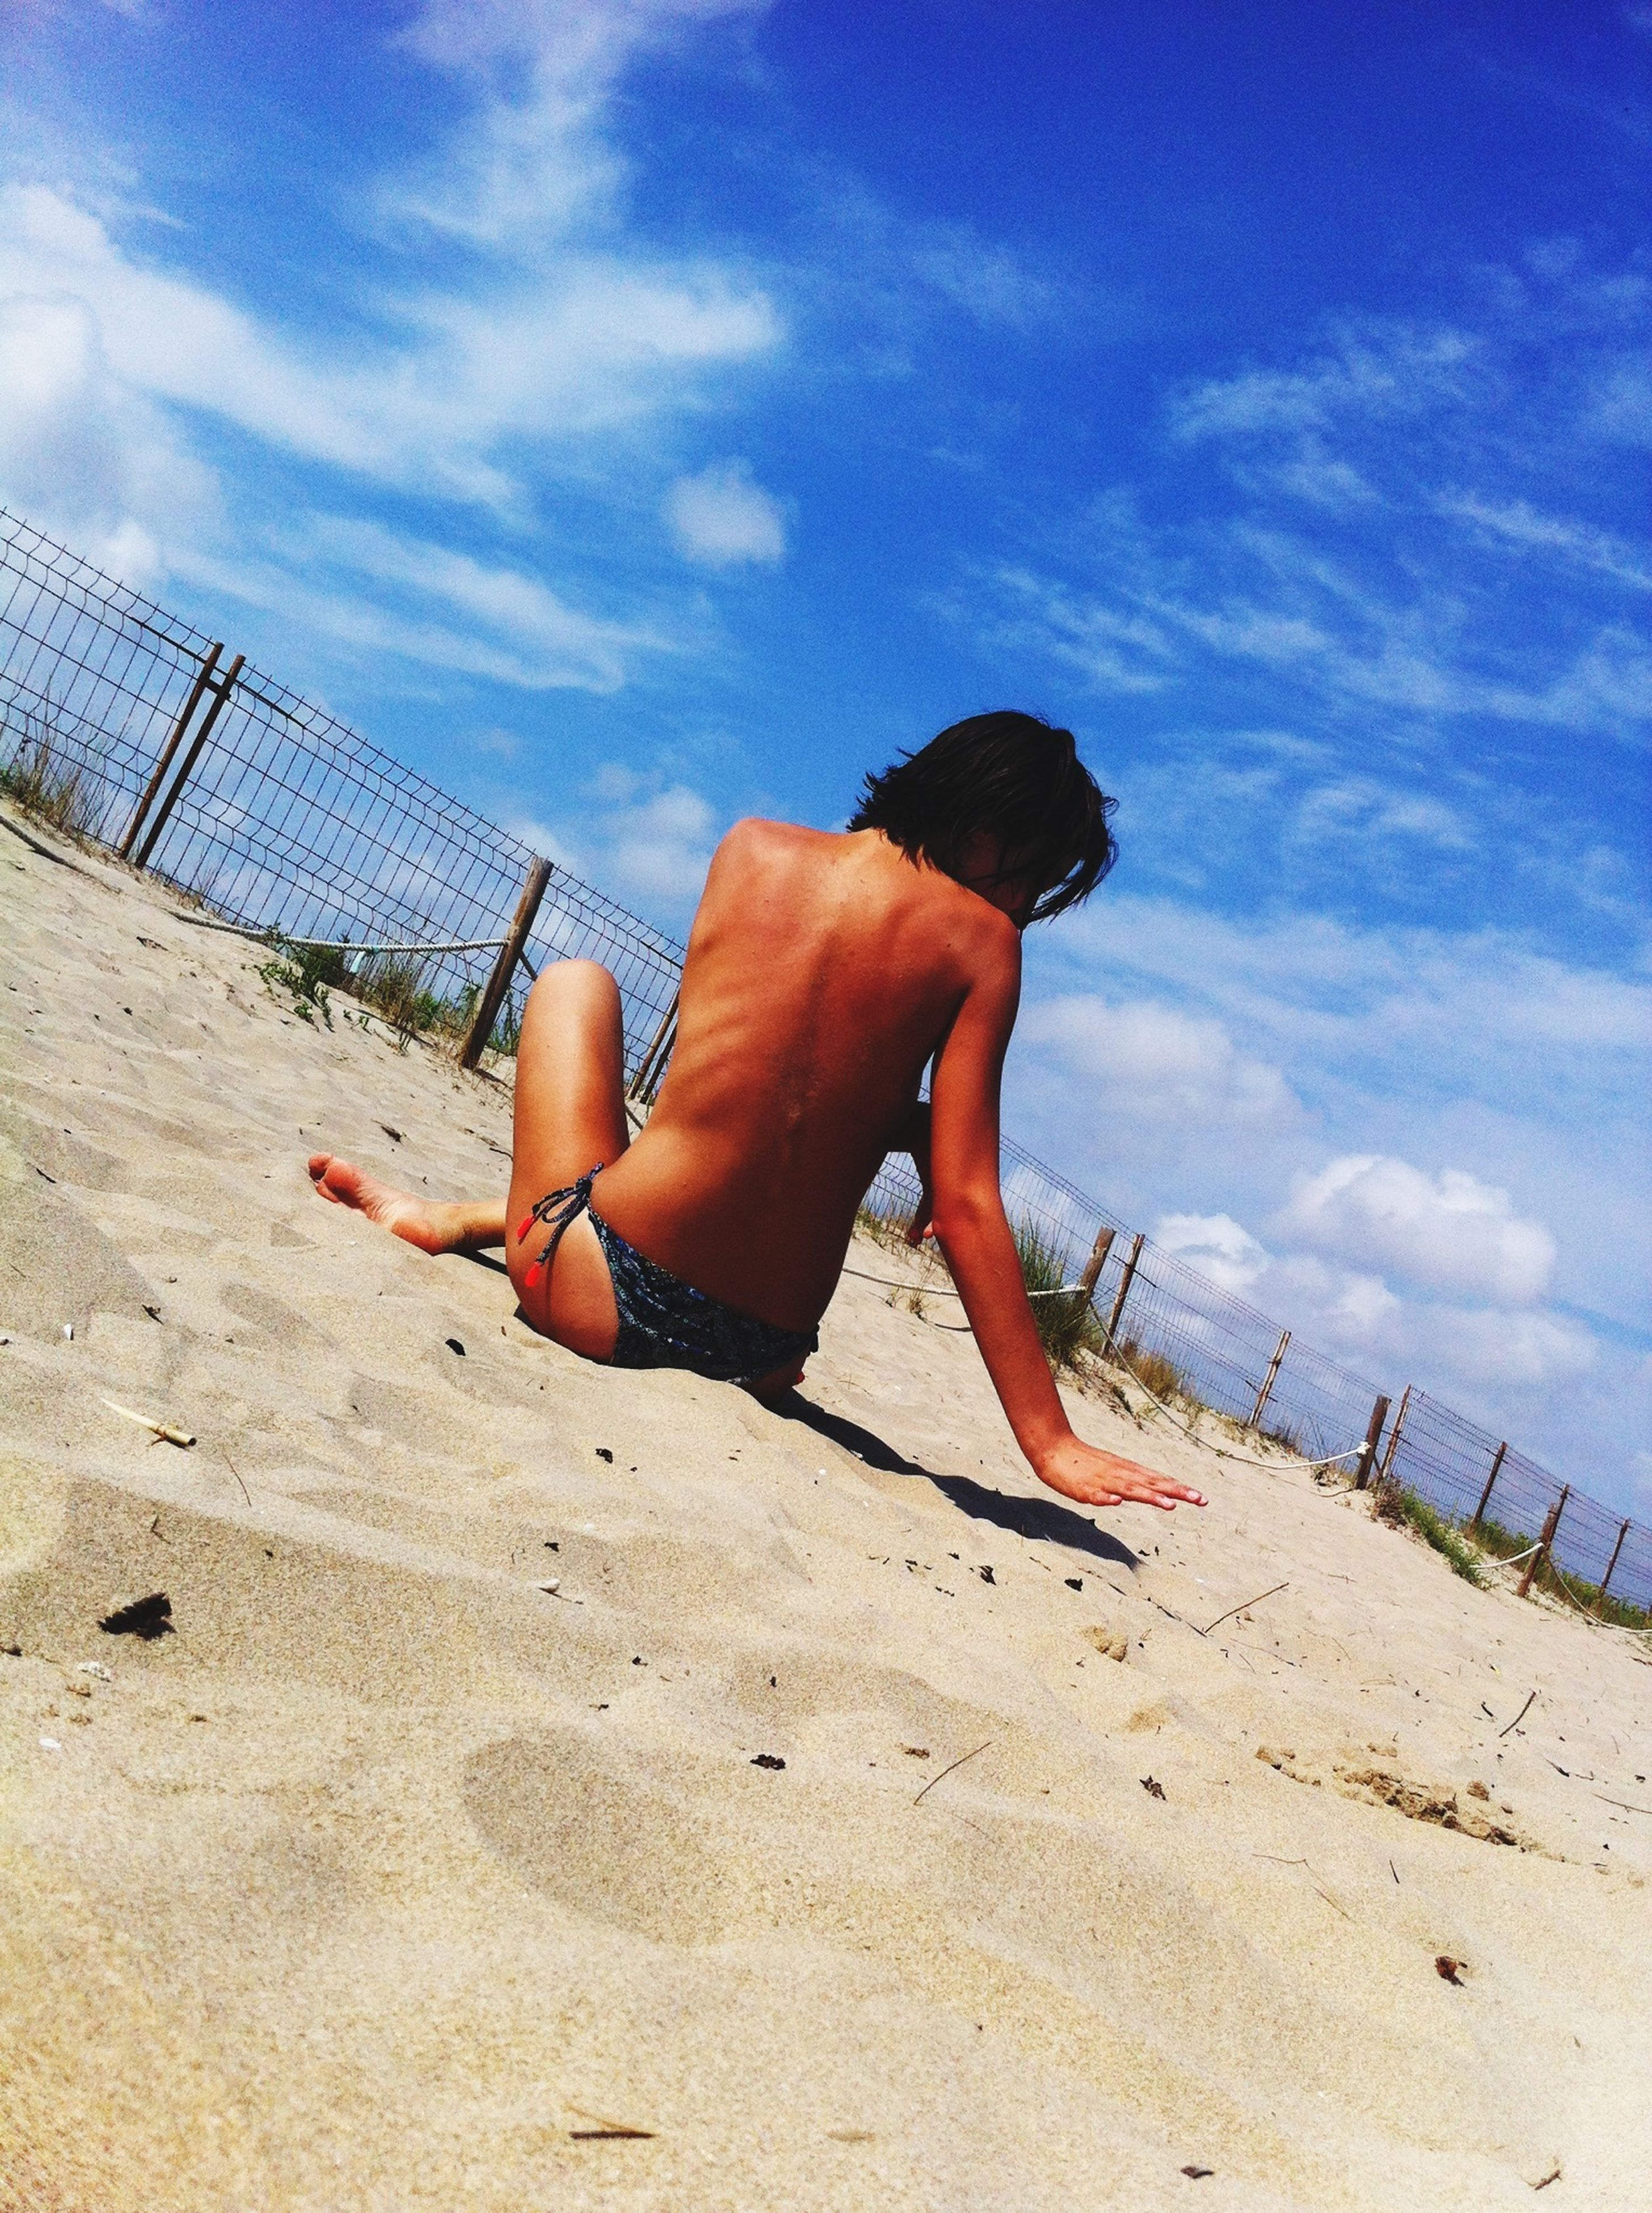 sky, leisure activity, lifestyles, full length, beach, sand, cloud - sky, childhood, casual clothing, rear view, shore, cloud, sea, sunlight, outdoors, boys, men, day